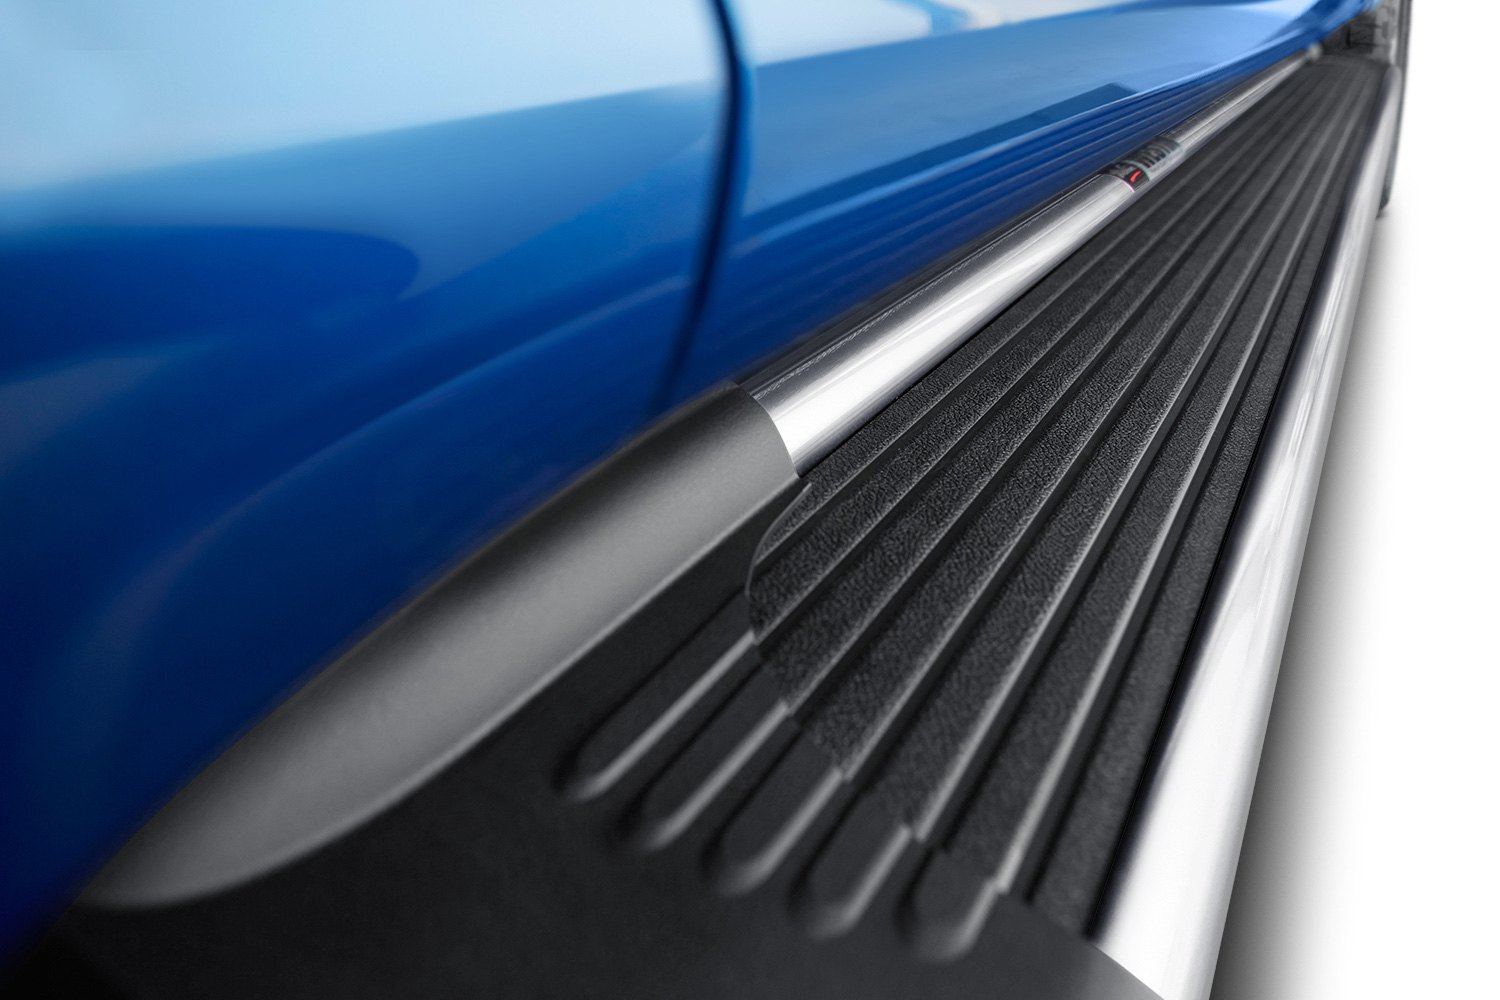 Westin Sure-Grip Brite Running Boards /& Mountings for Enclave//Acadia//Traverse